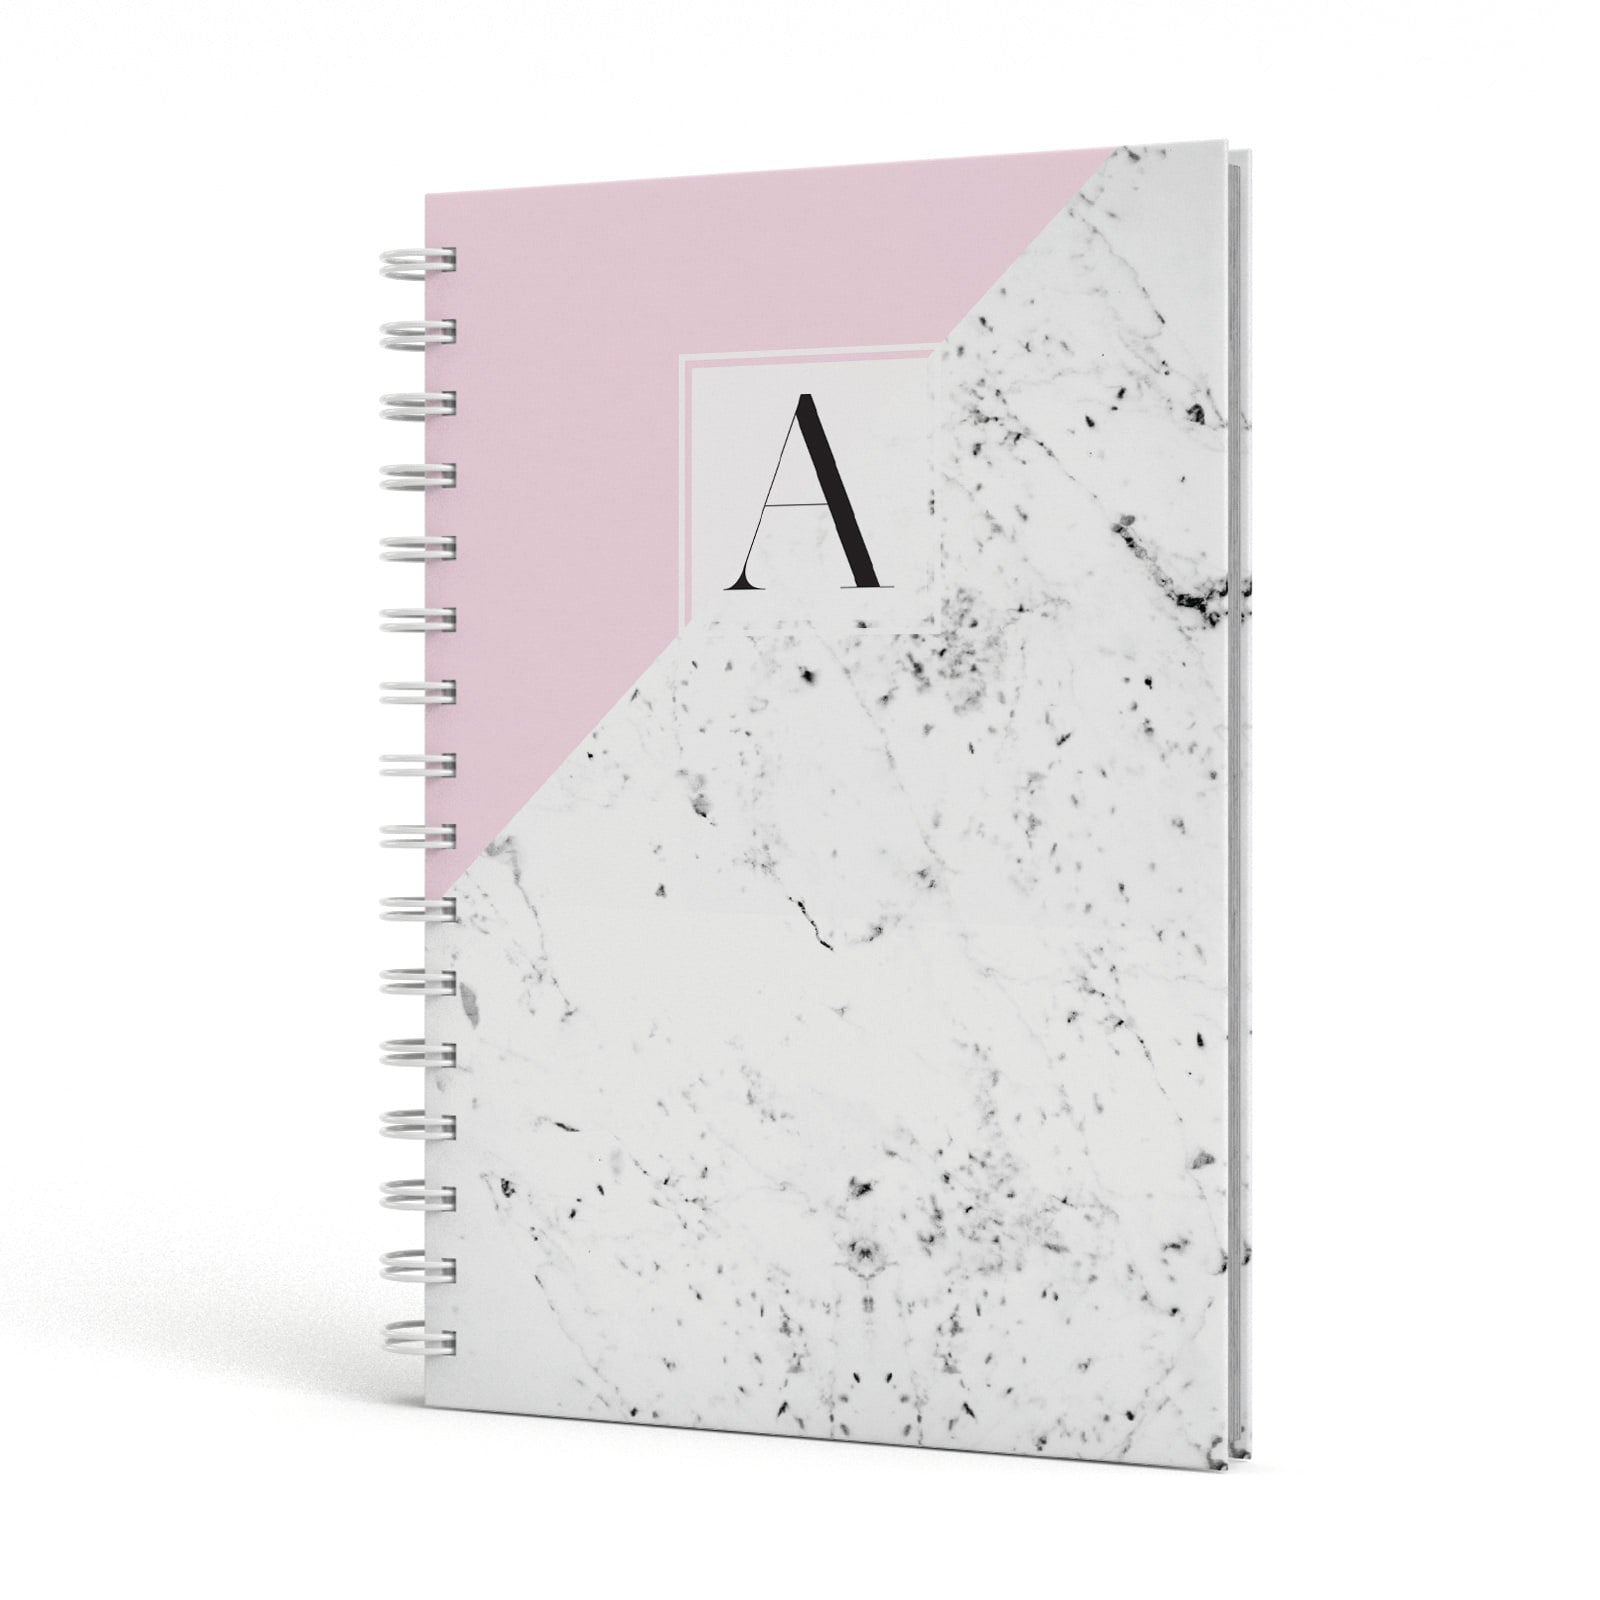 Personalised Monogram Initial Letter Marble A5 Hardcover Notebook Side View